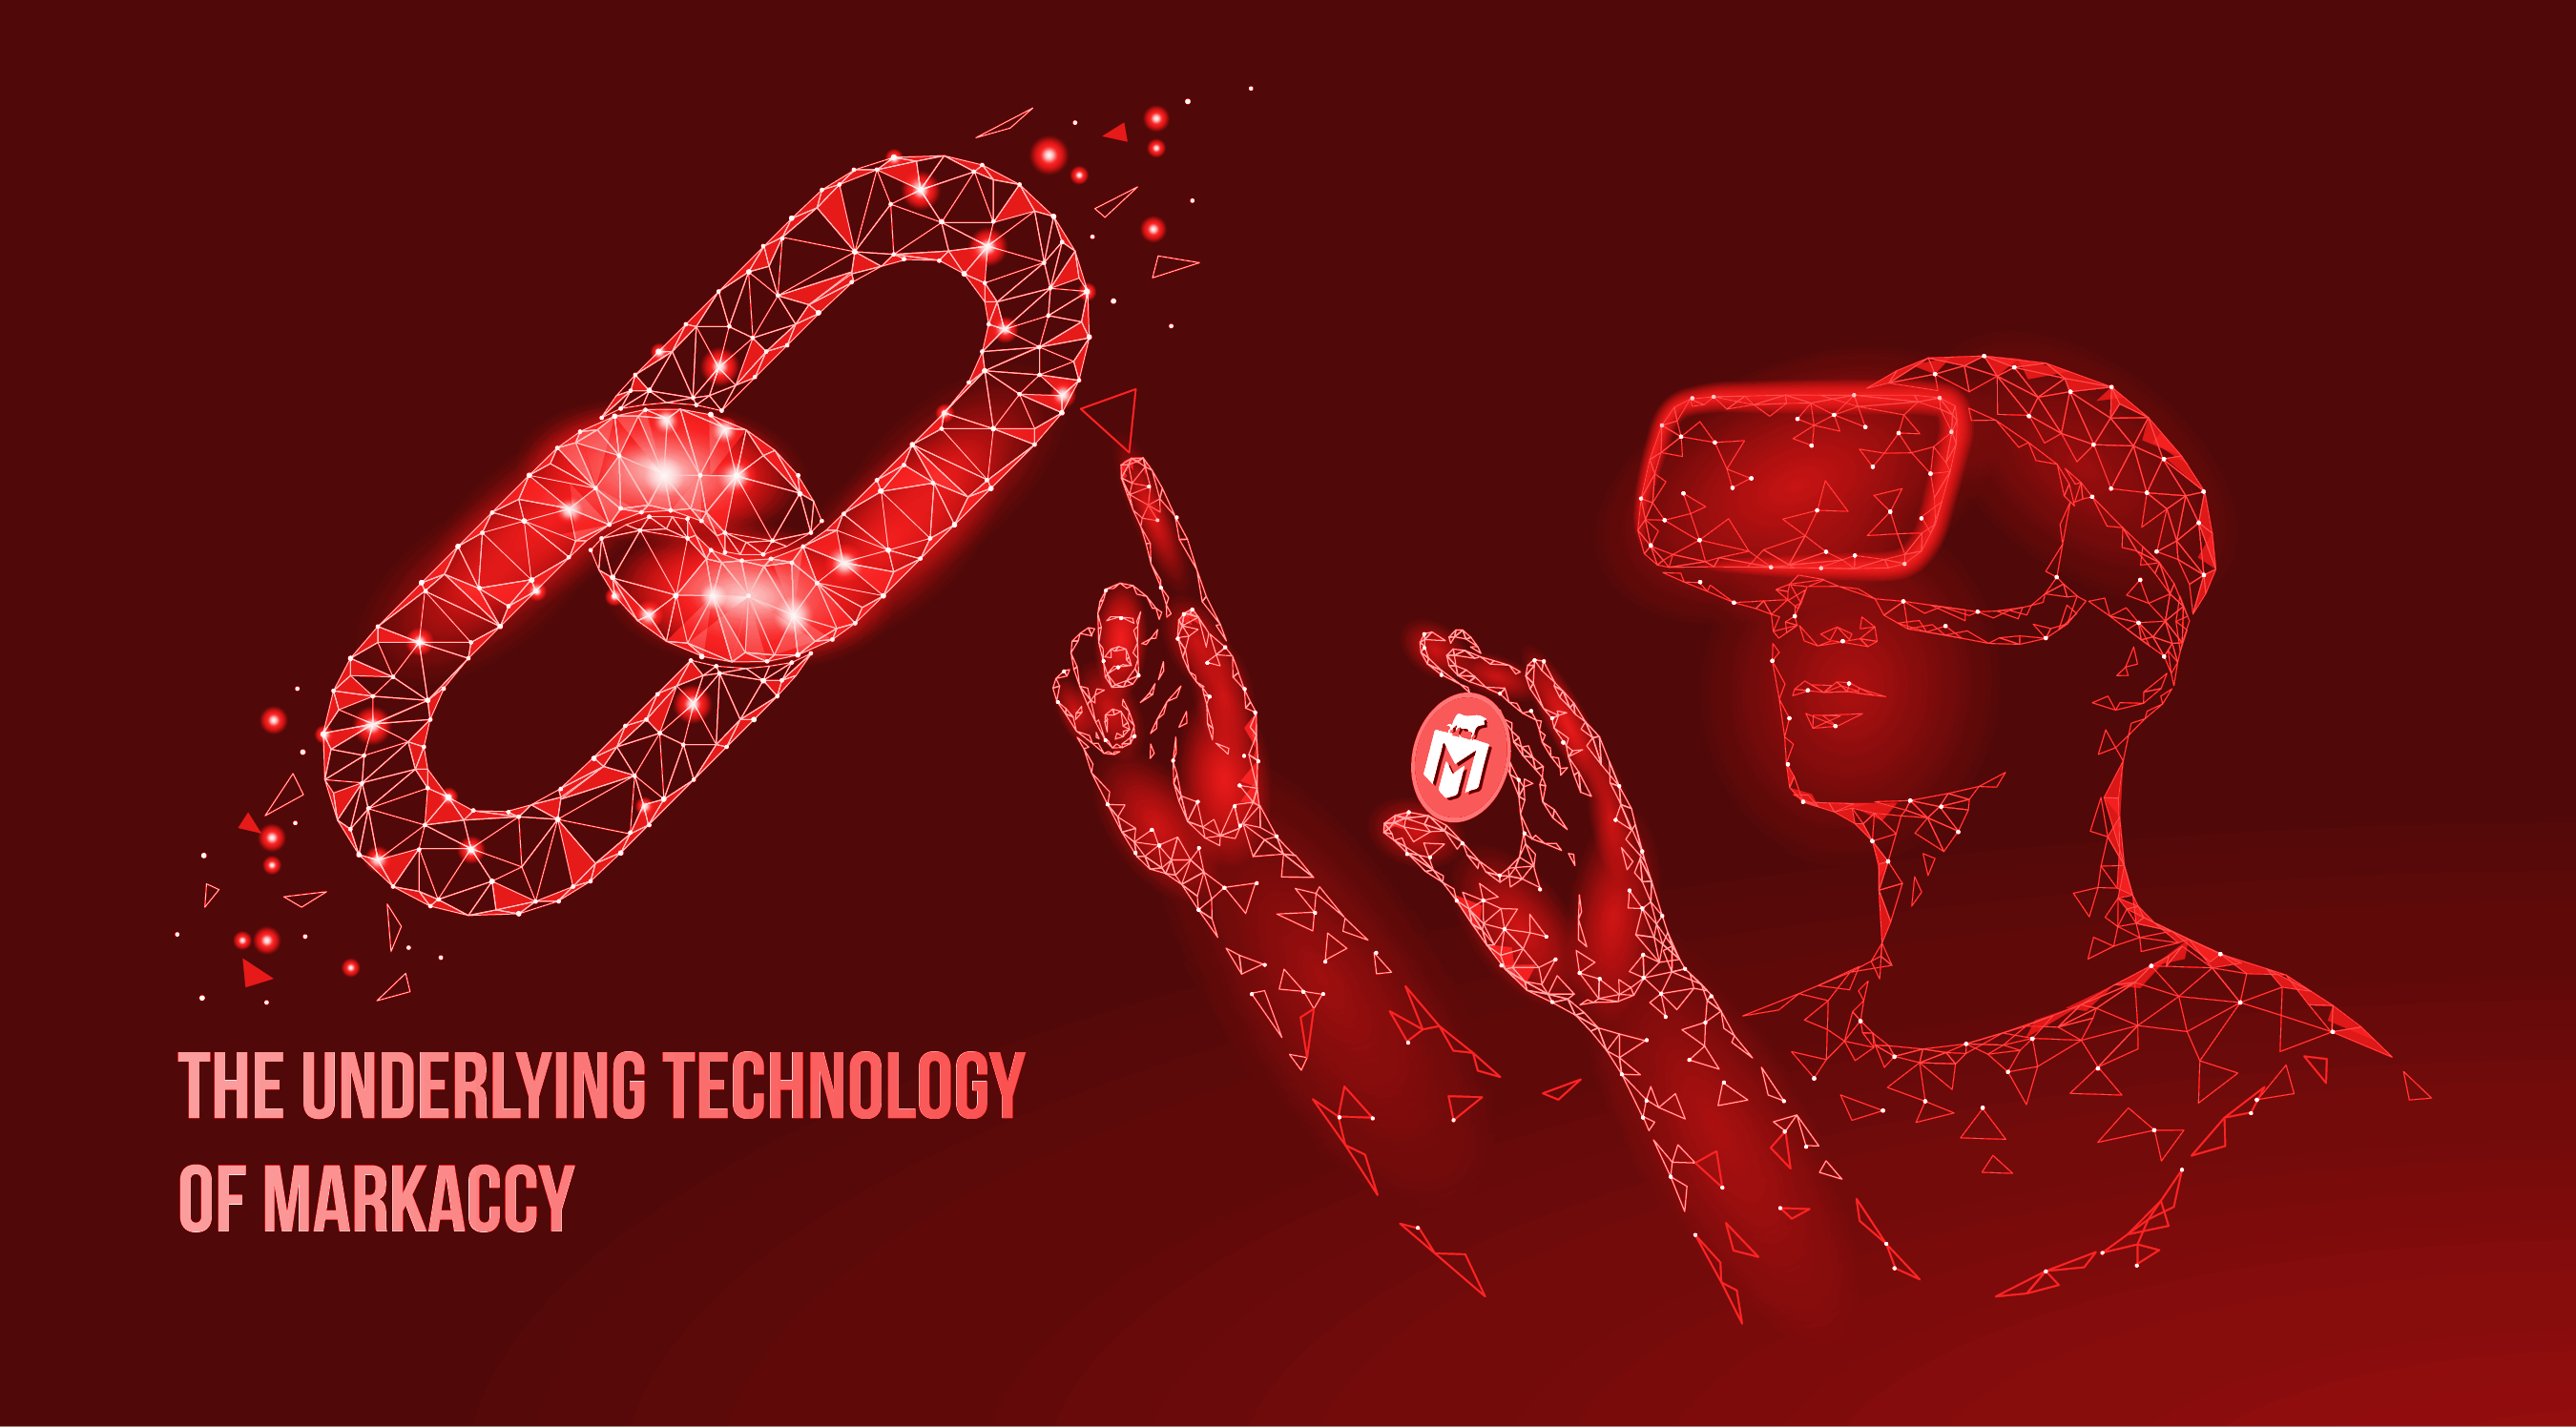 The Underlying Technology of Markaccy